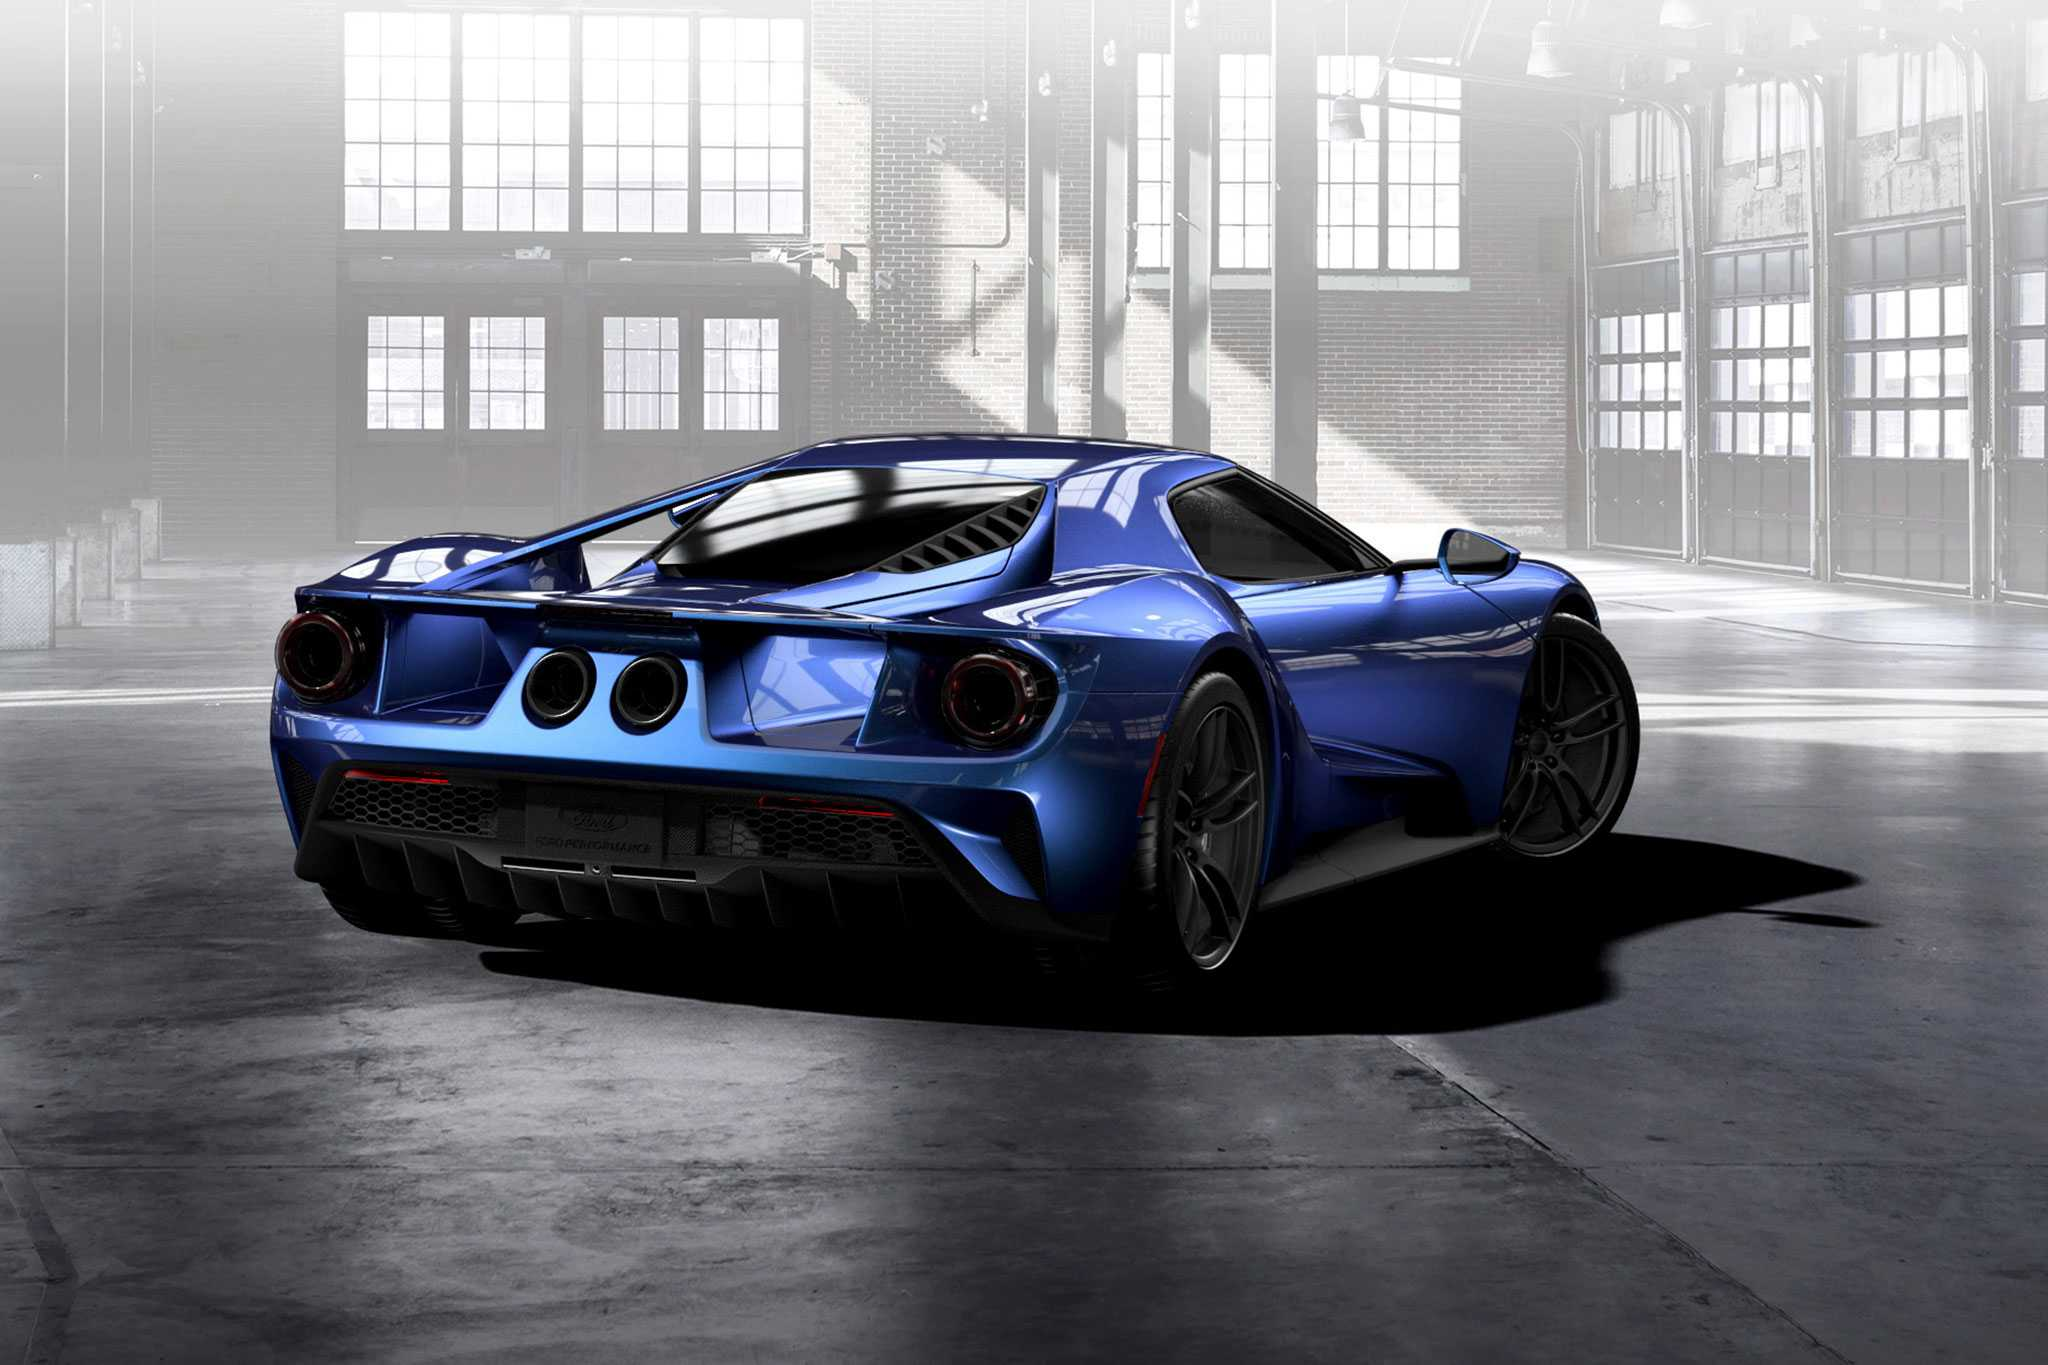 2017 Ford GT Available In 8 Different Colors With Customization Options